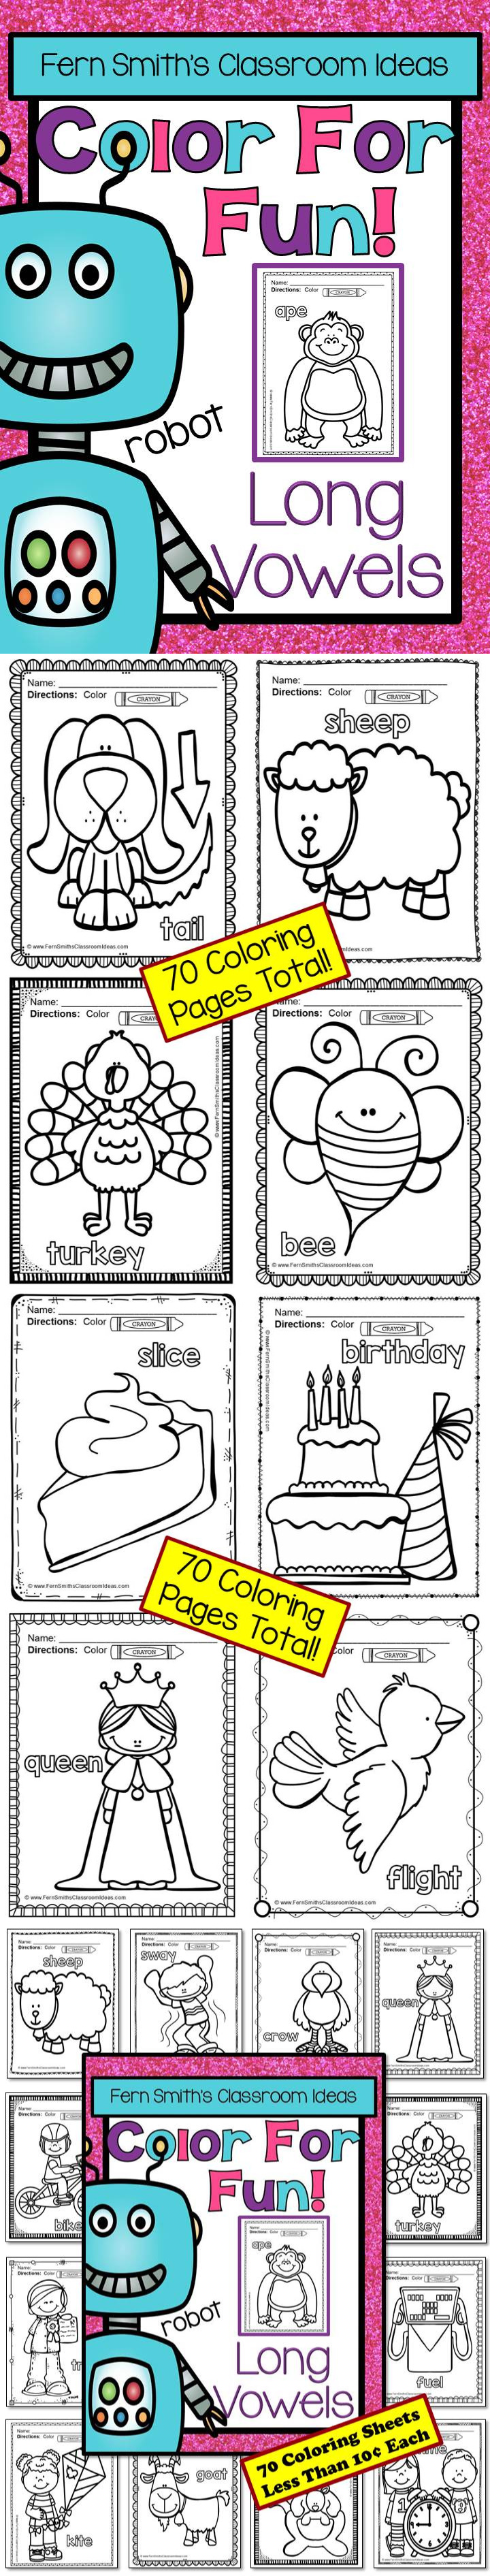 Long Vowels Coloring Pages - 70 Pages of Long Vowel ...